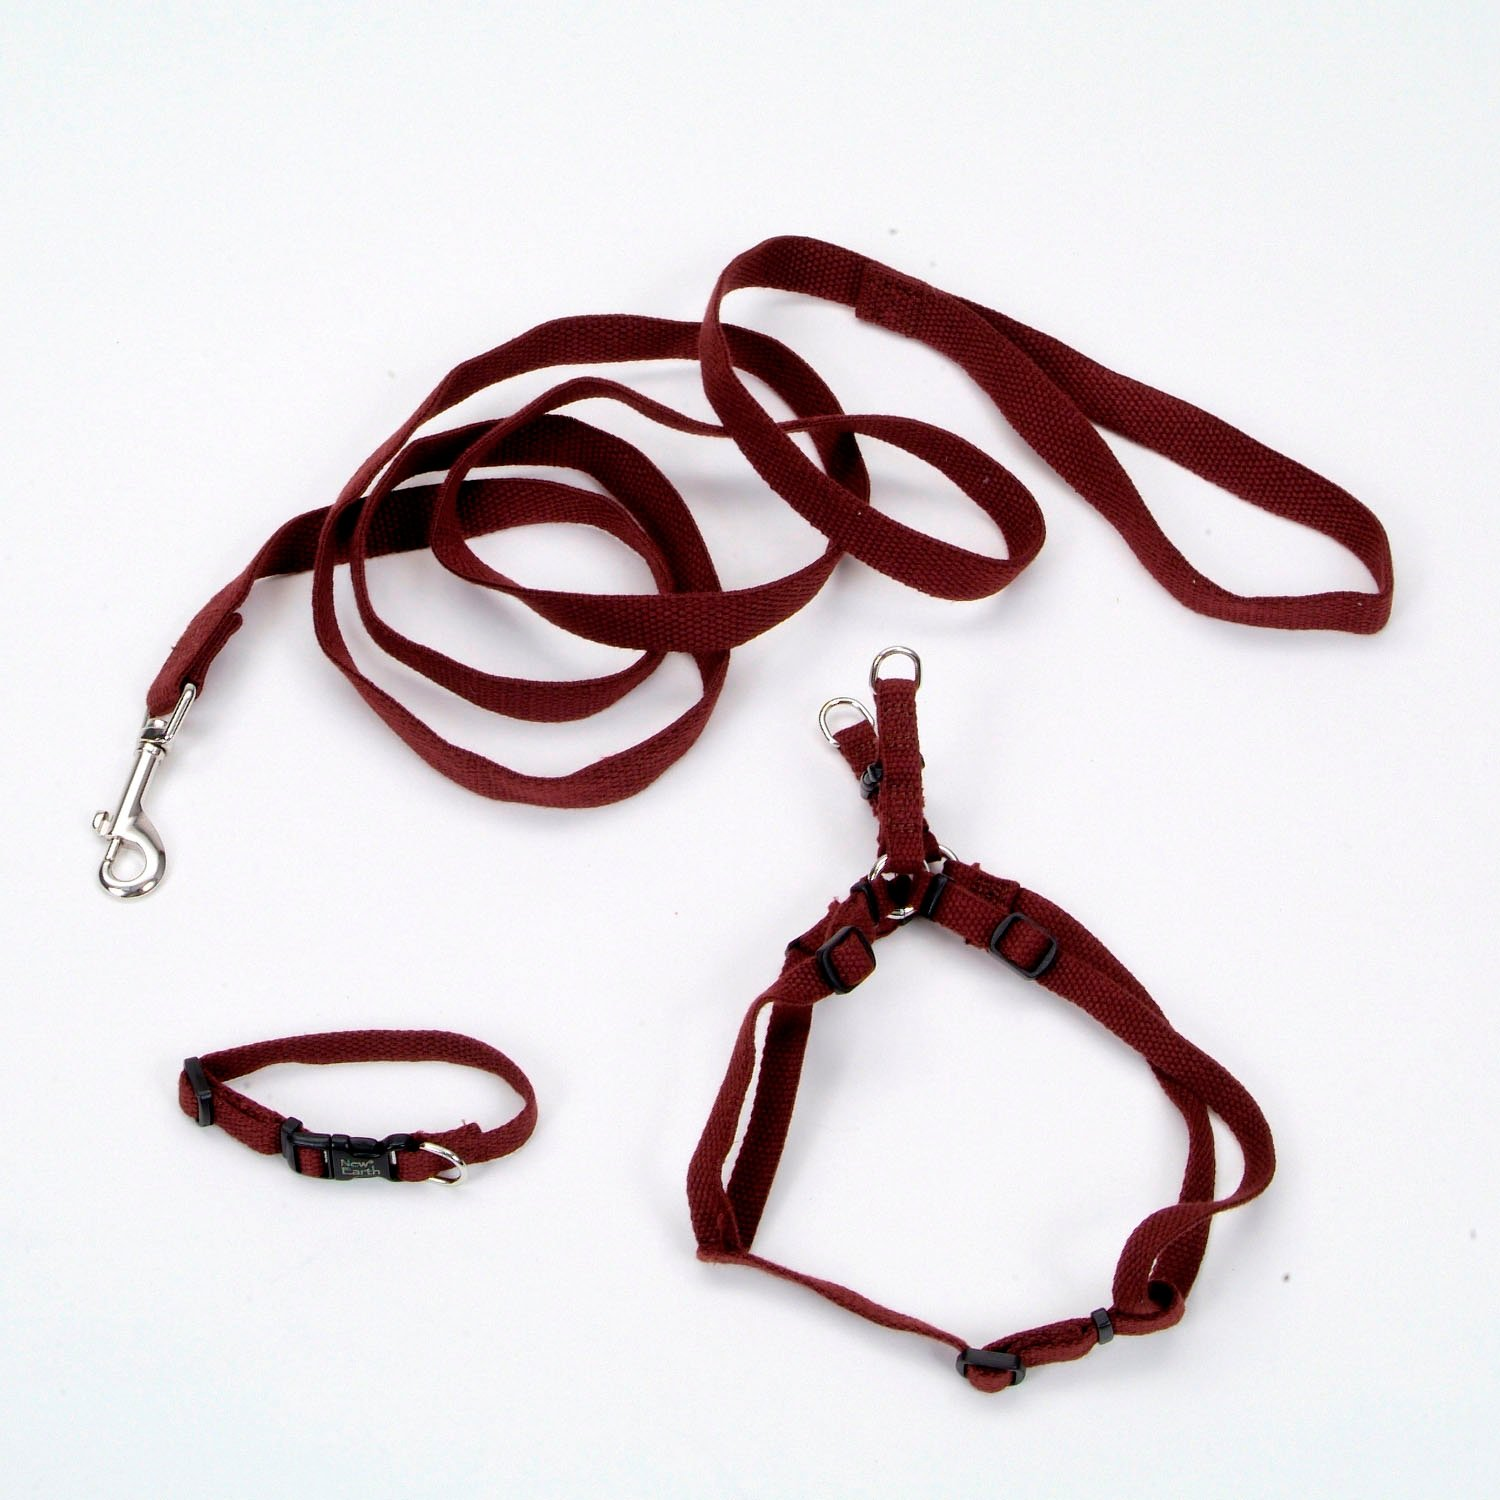 Coastal Pet New Earth 3-Piece Soy Dog Leash Harness and Collar Bundle in Brown